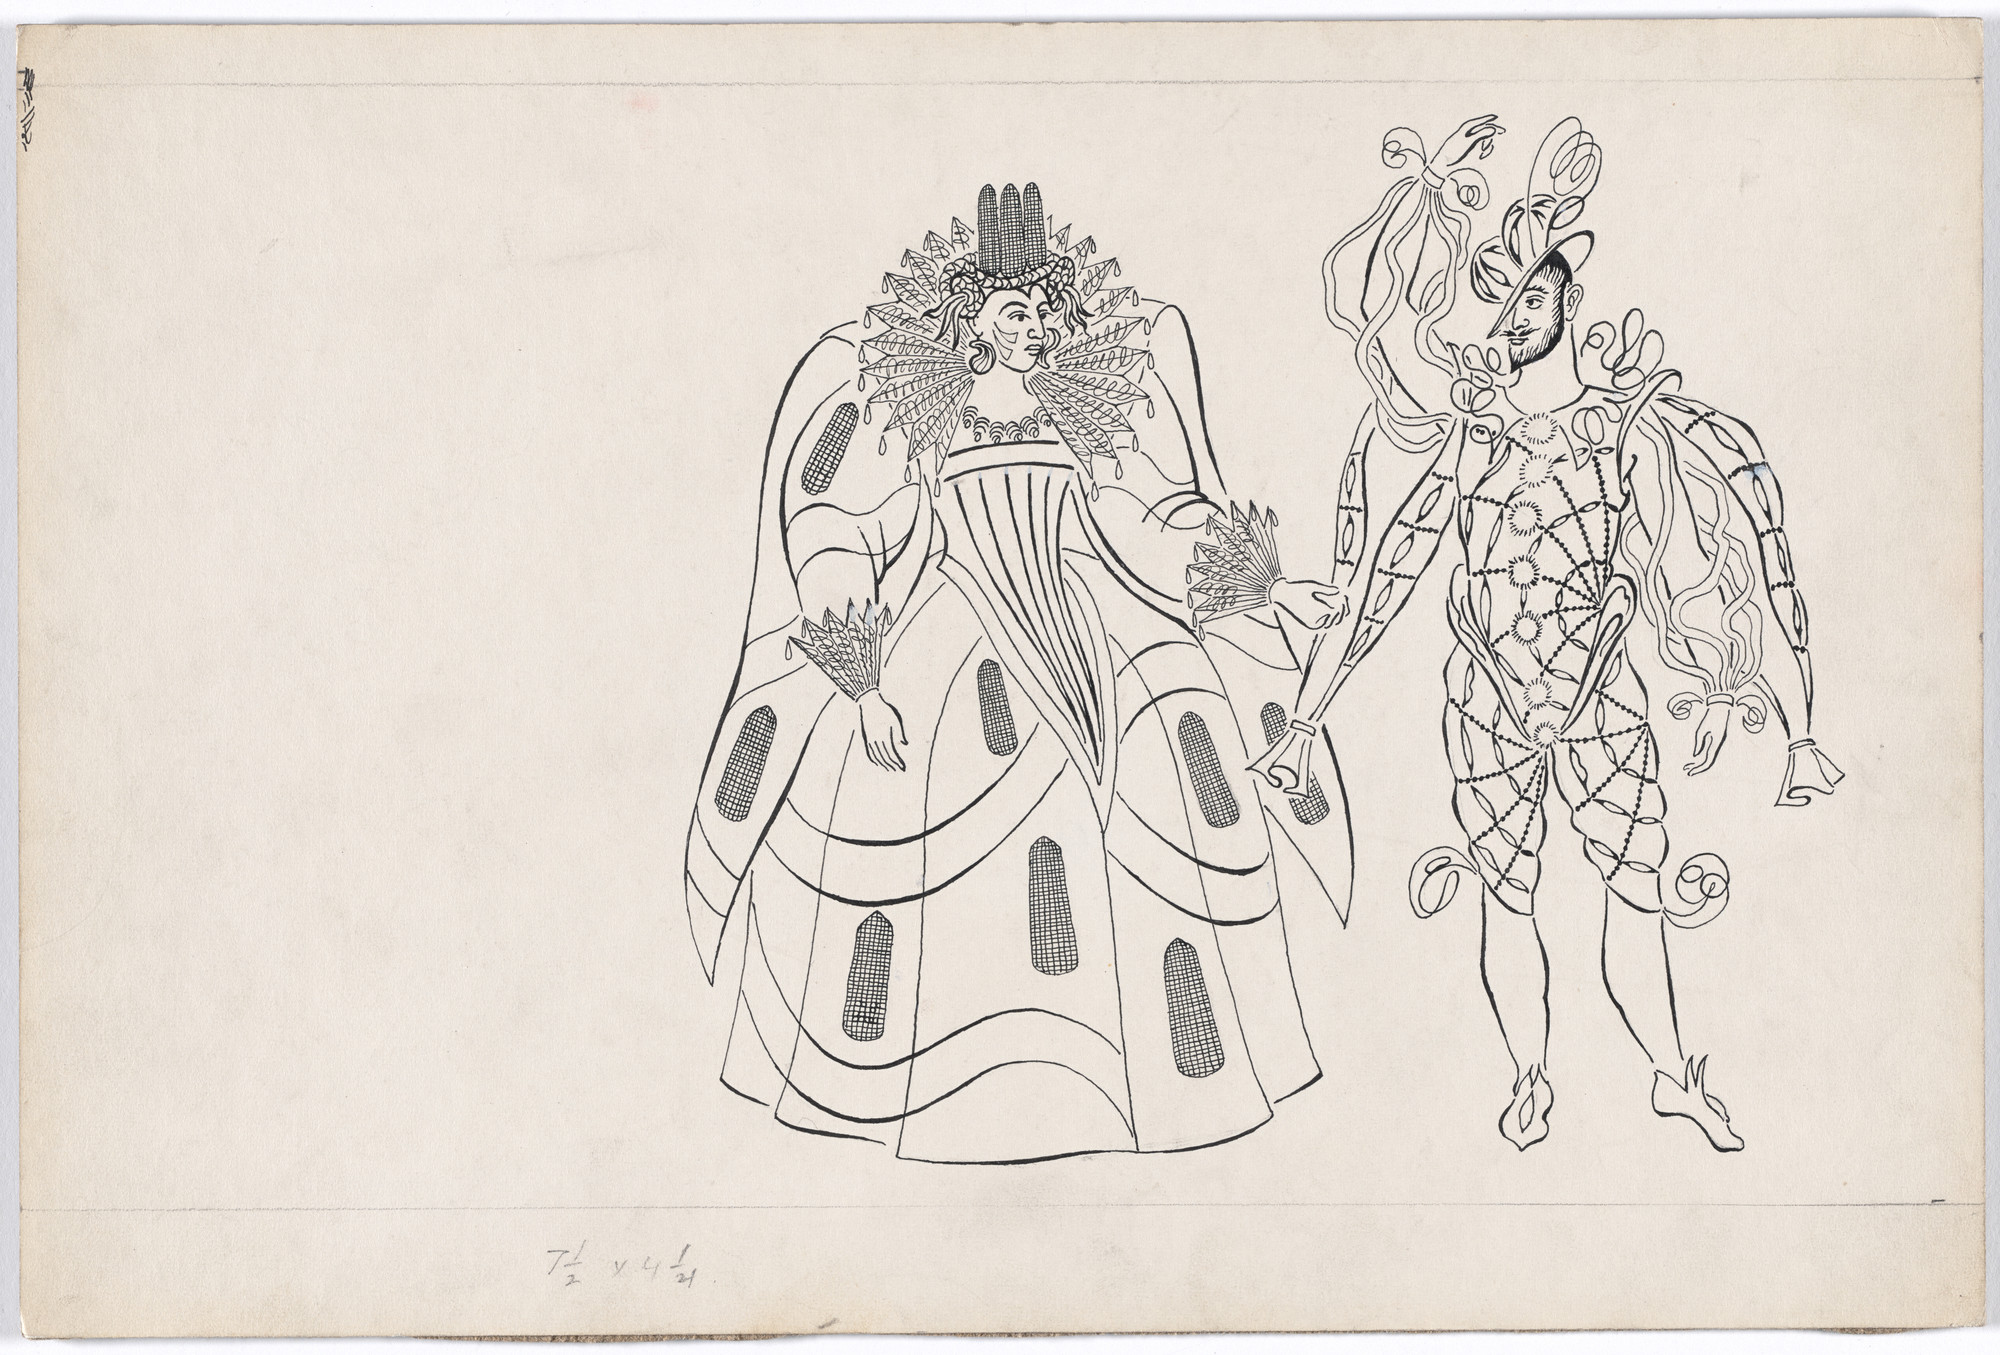 Karl Free. Pocahontas and John Smith. Costume design for the ballet Pocahontas. c. 1936